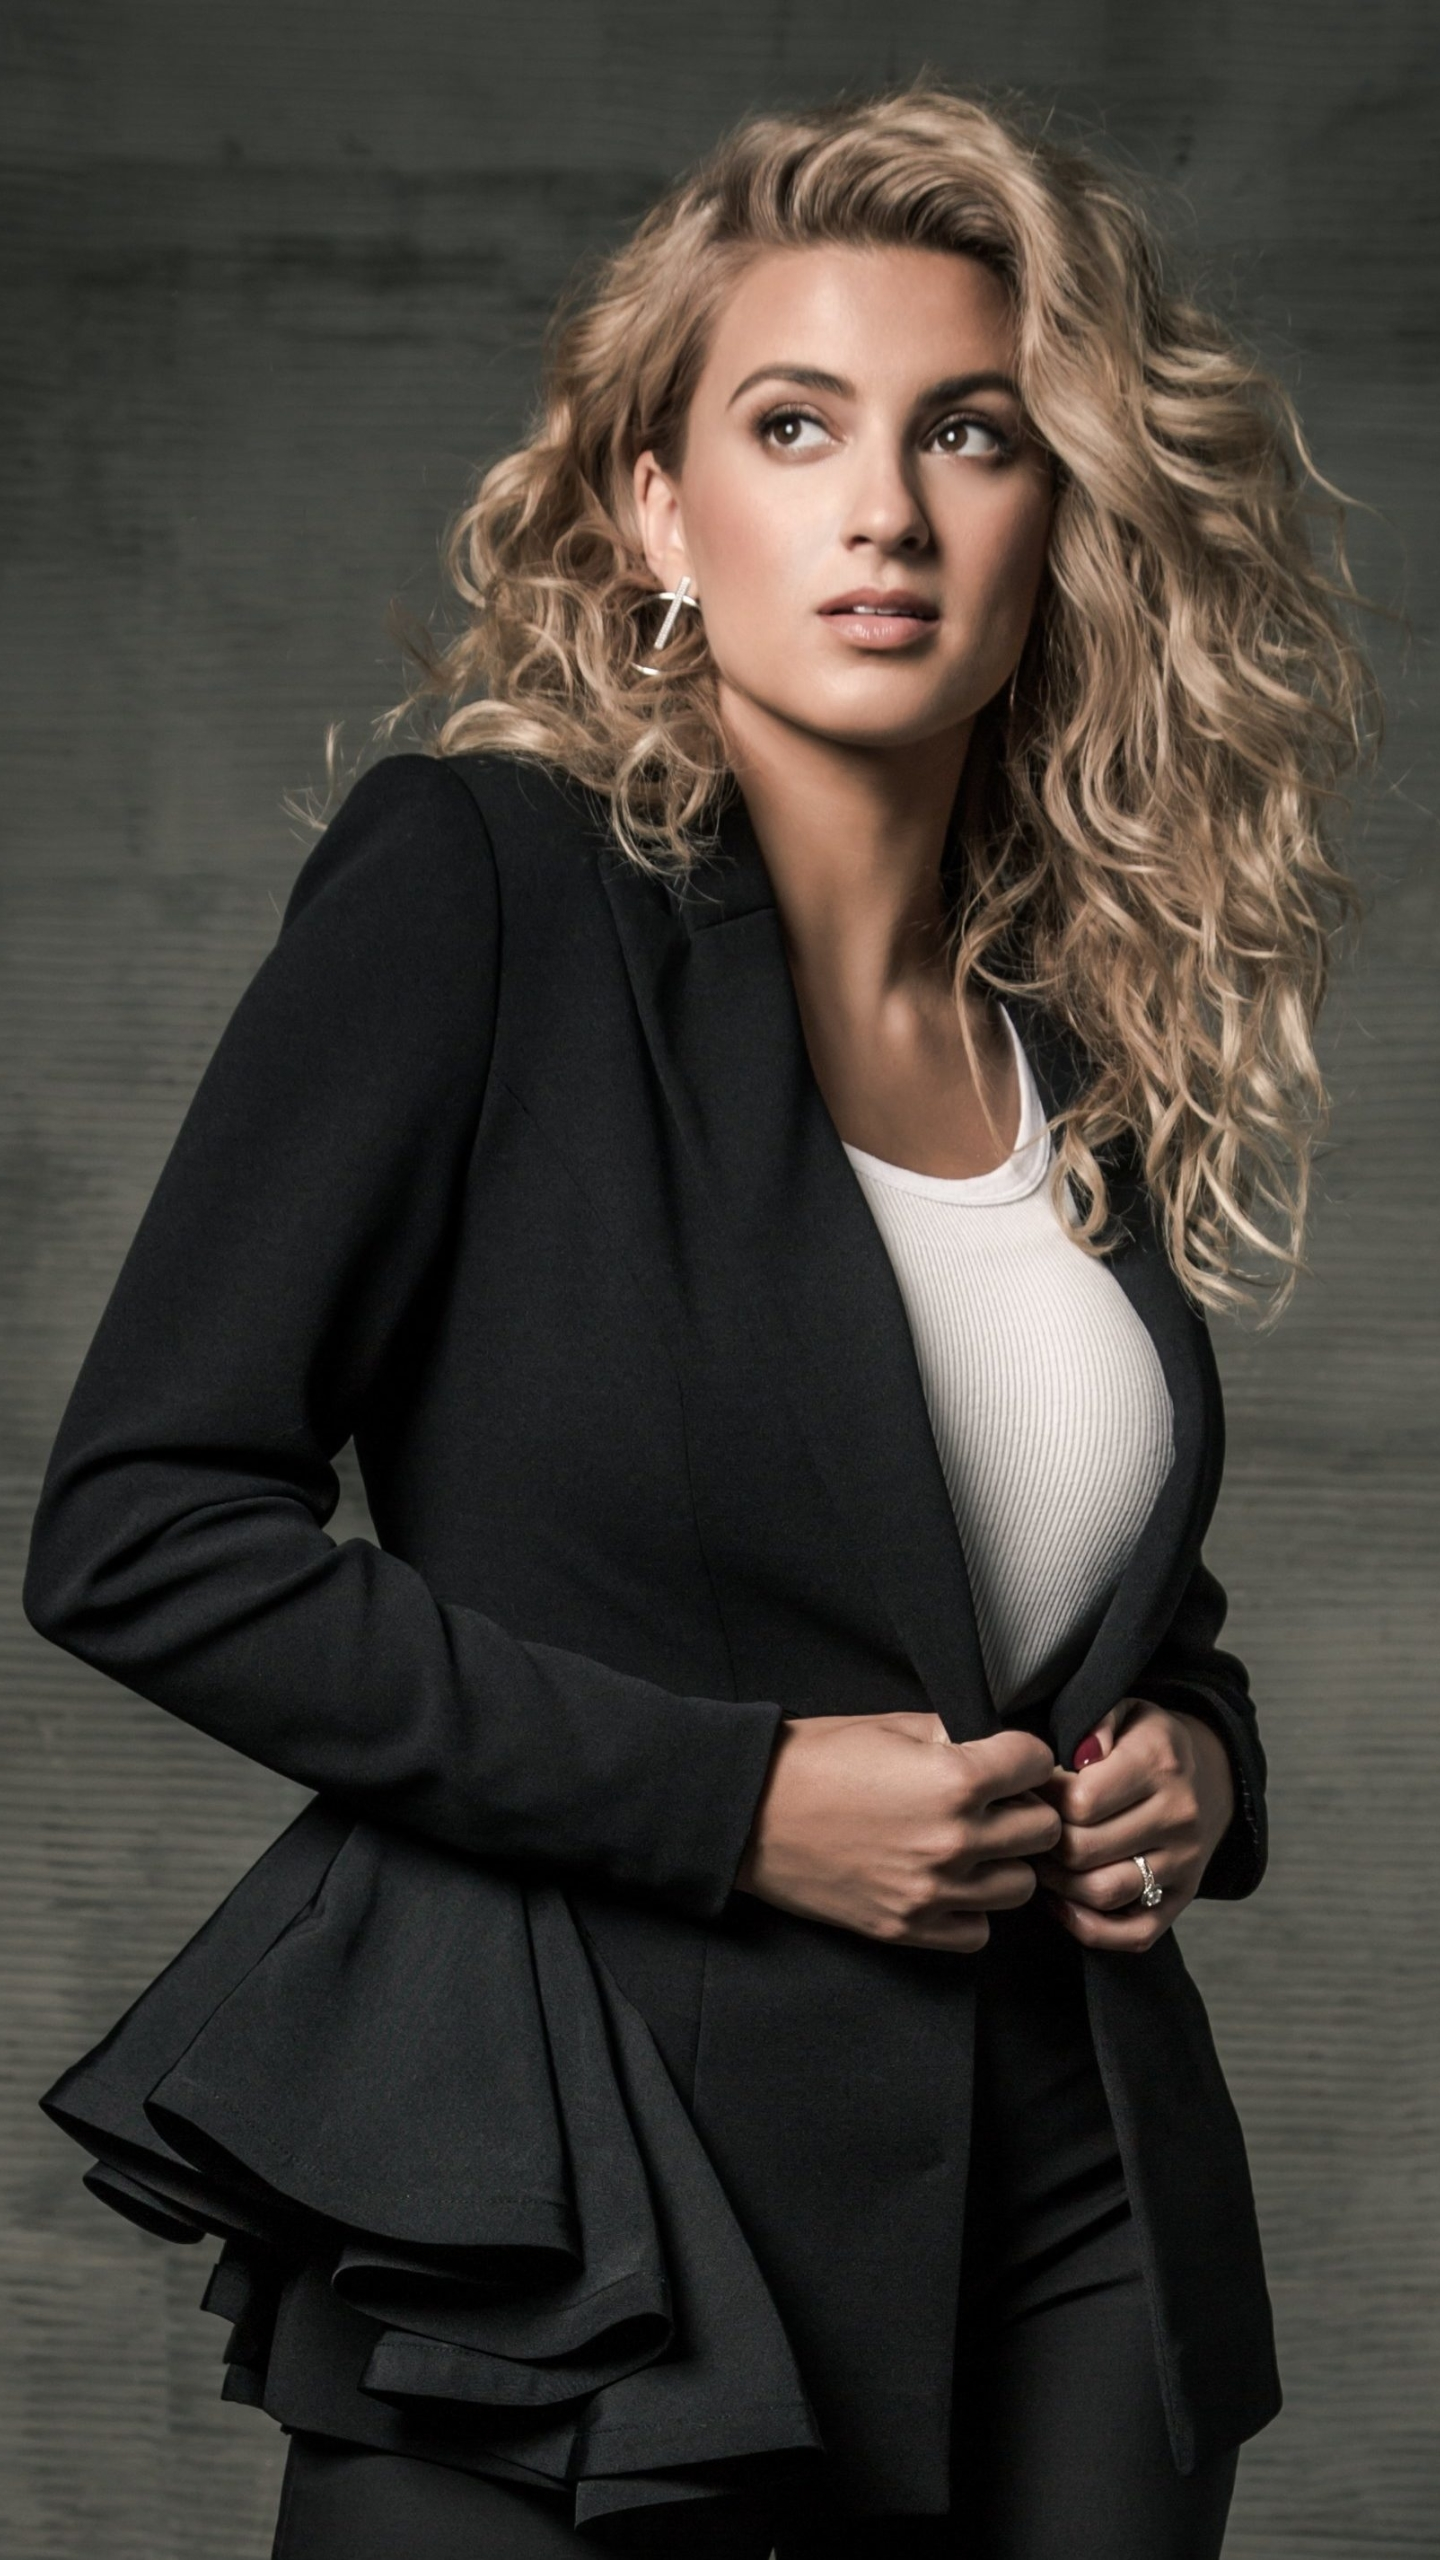 Tori kelly 2020 mobile wallpaper